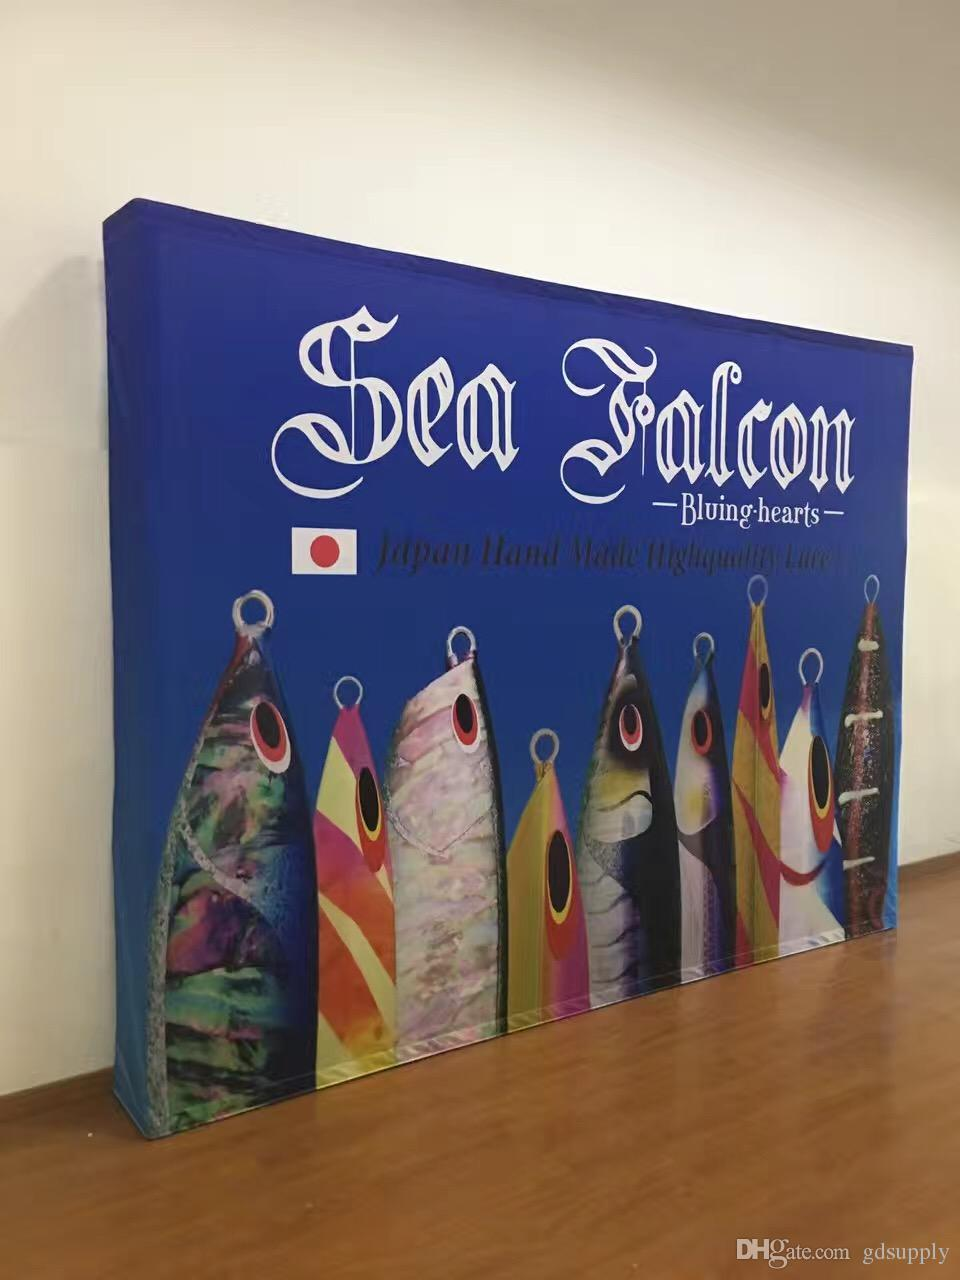 10ft Fabric Pop up Display Banner Stand Tension Fabric Frame Exhibition Wall Stand for Trade Show with Graphic with end caps